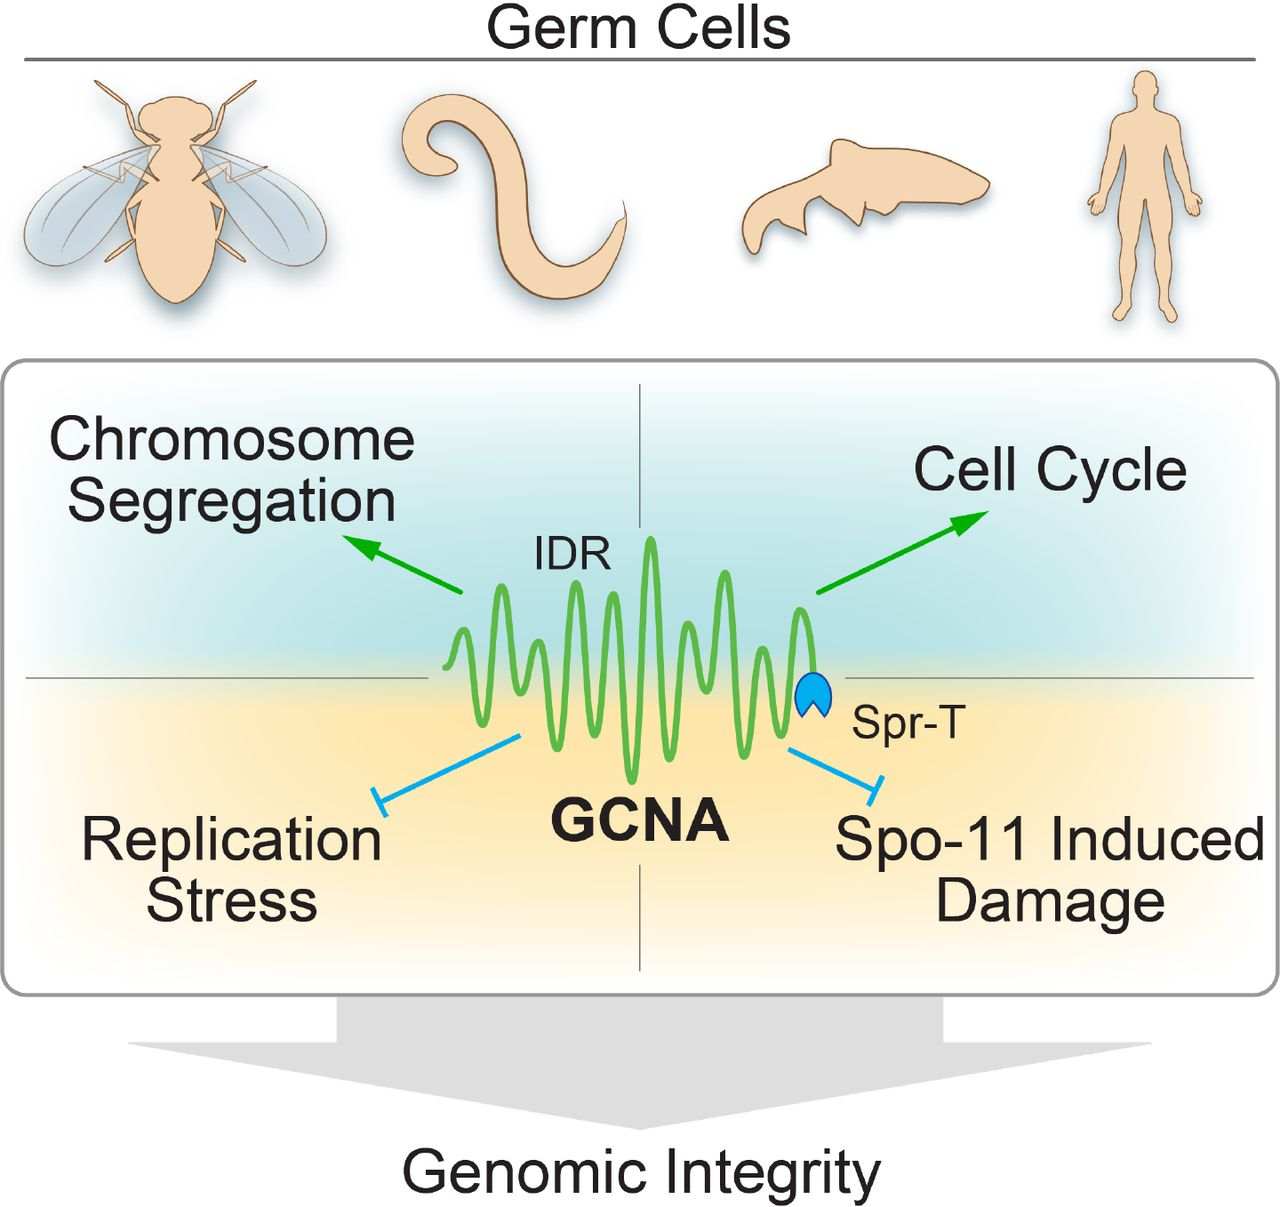 GCNA preserves genome integrity and fertility across species